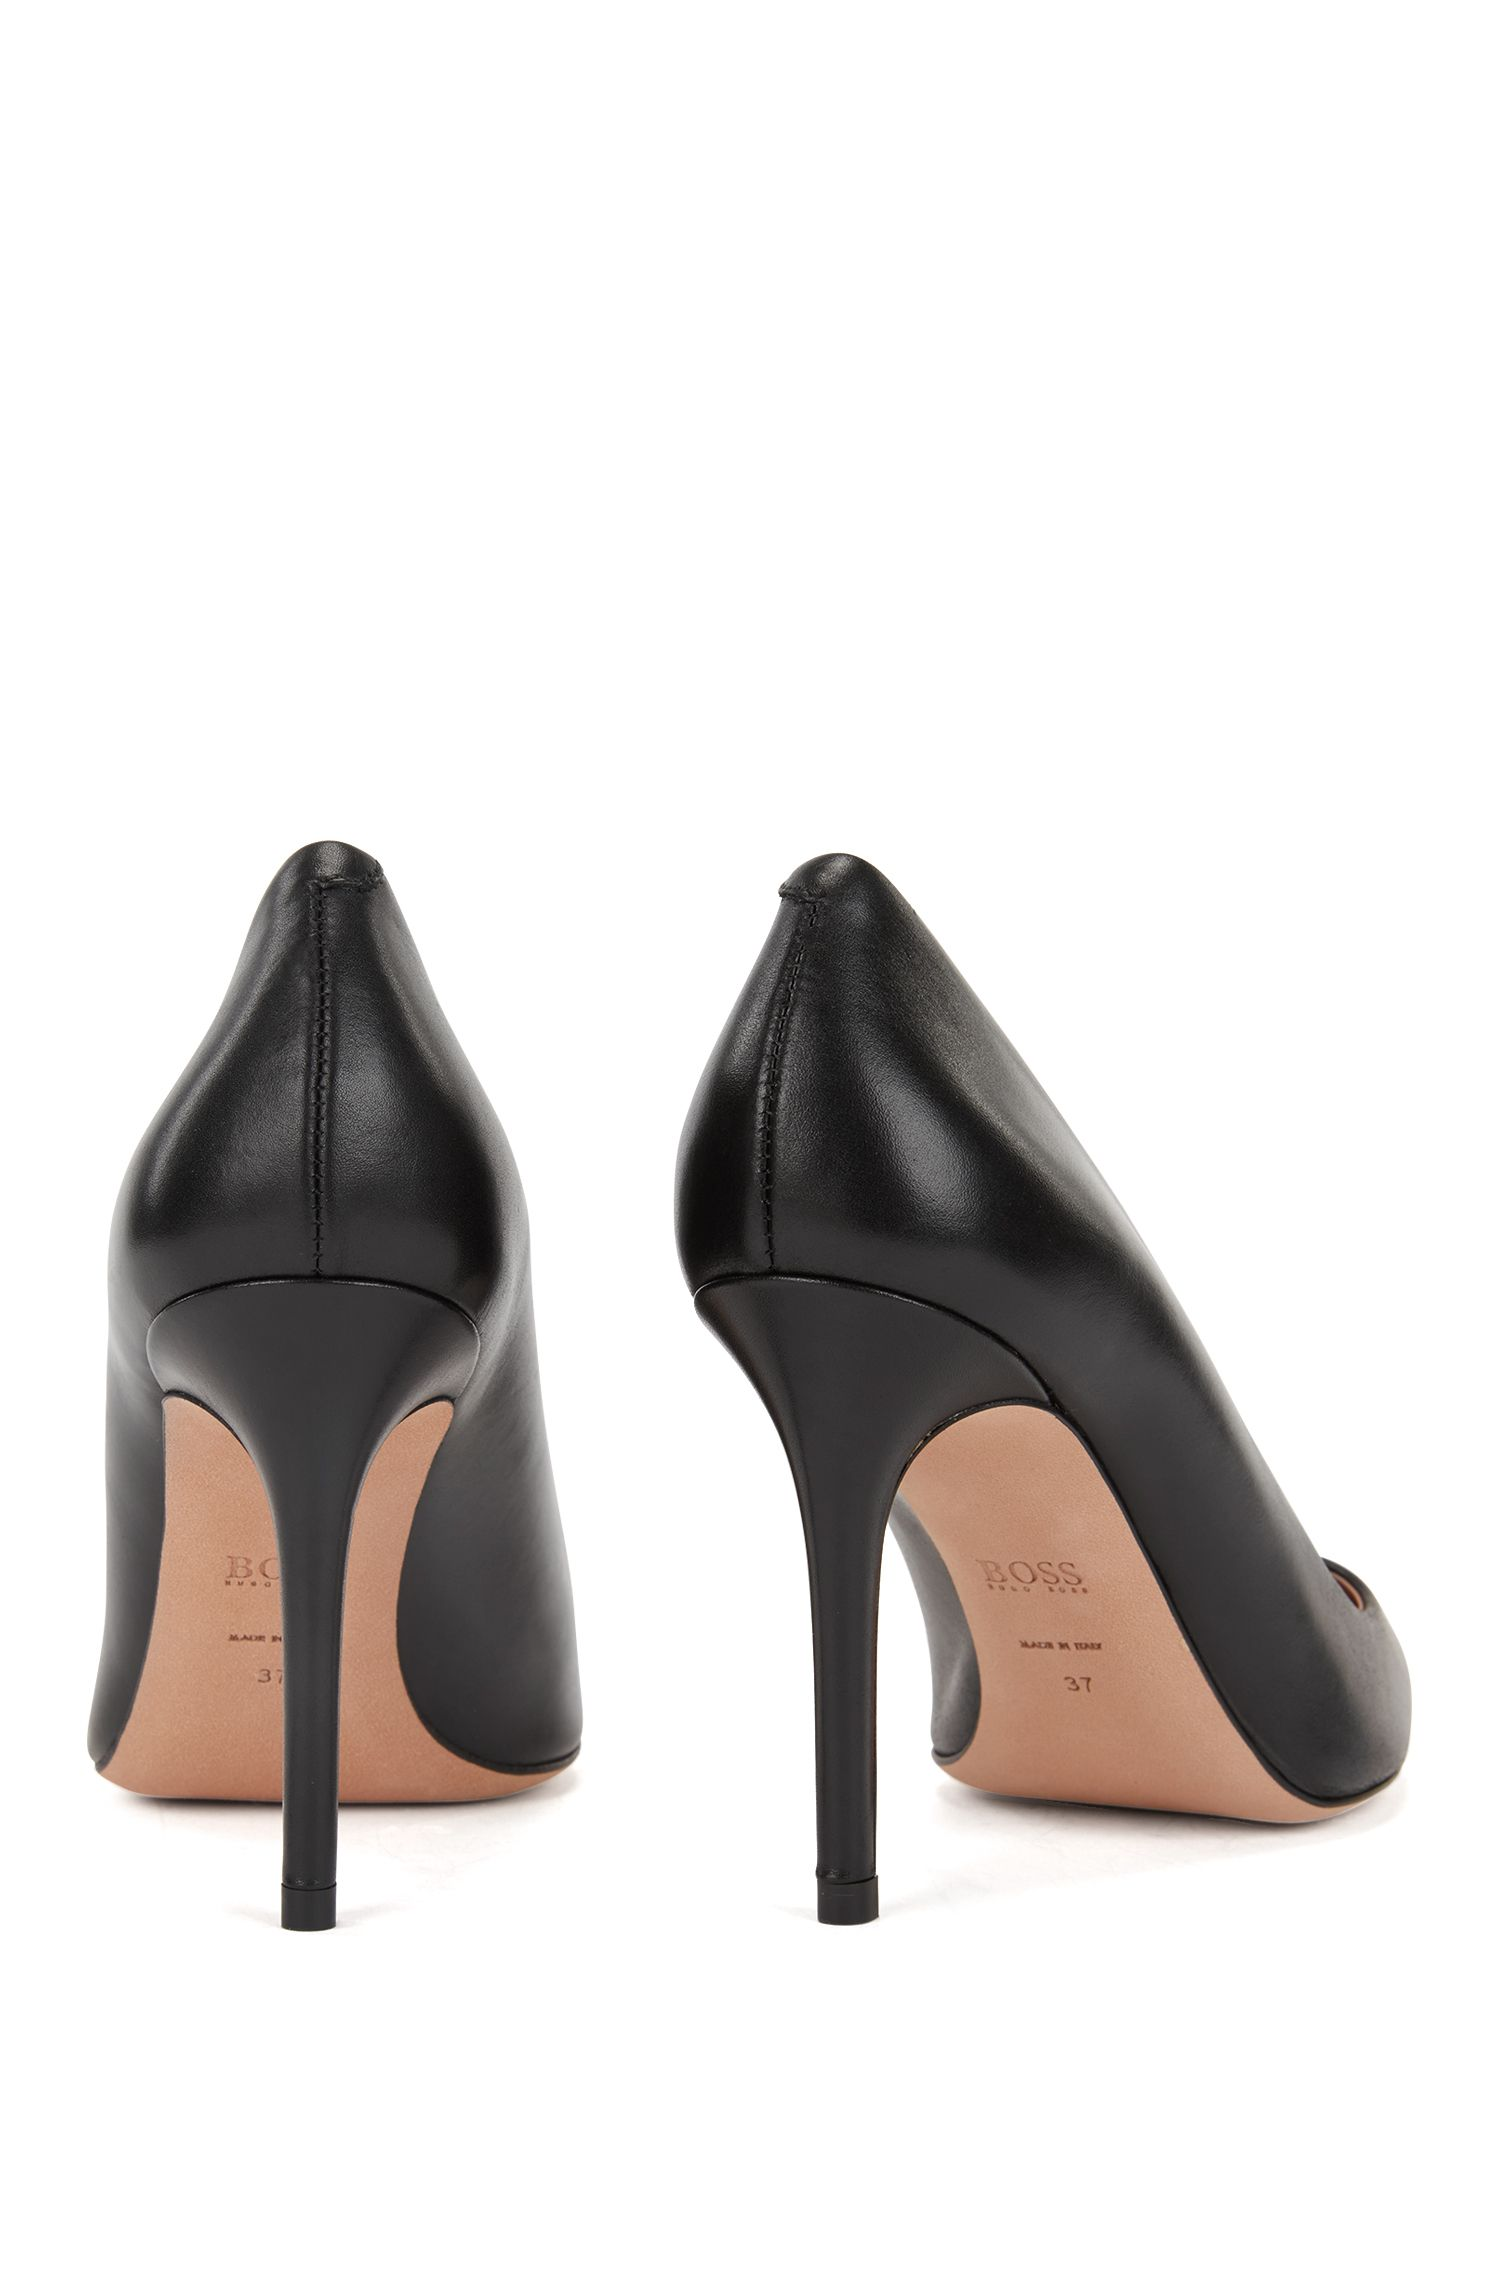 Pointed-toe court shoes in Italian leather HUGO BOSS